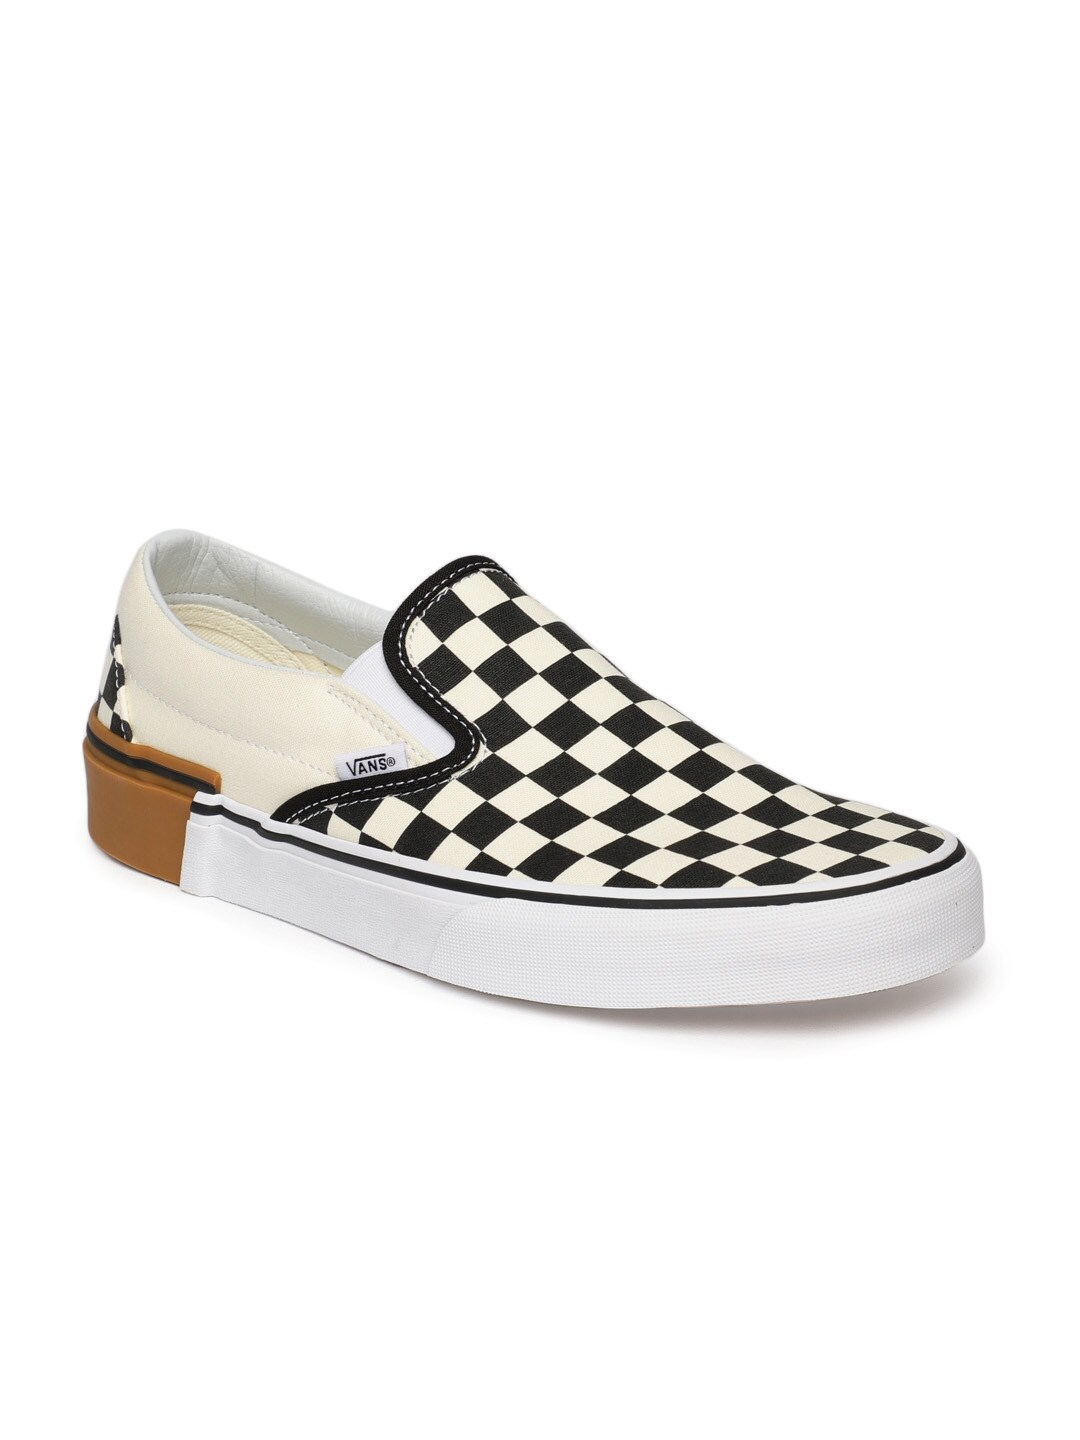 38062a246b Vans Shoes for Women - Buy Vans Shoes for Girls Online - Myntra